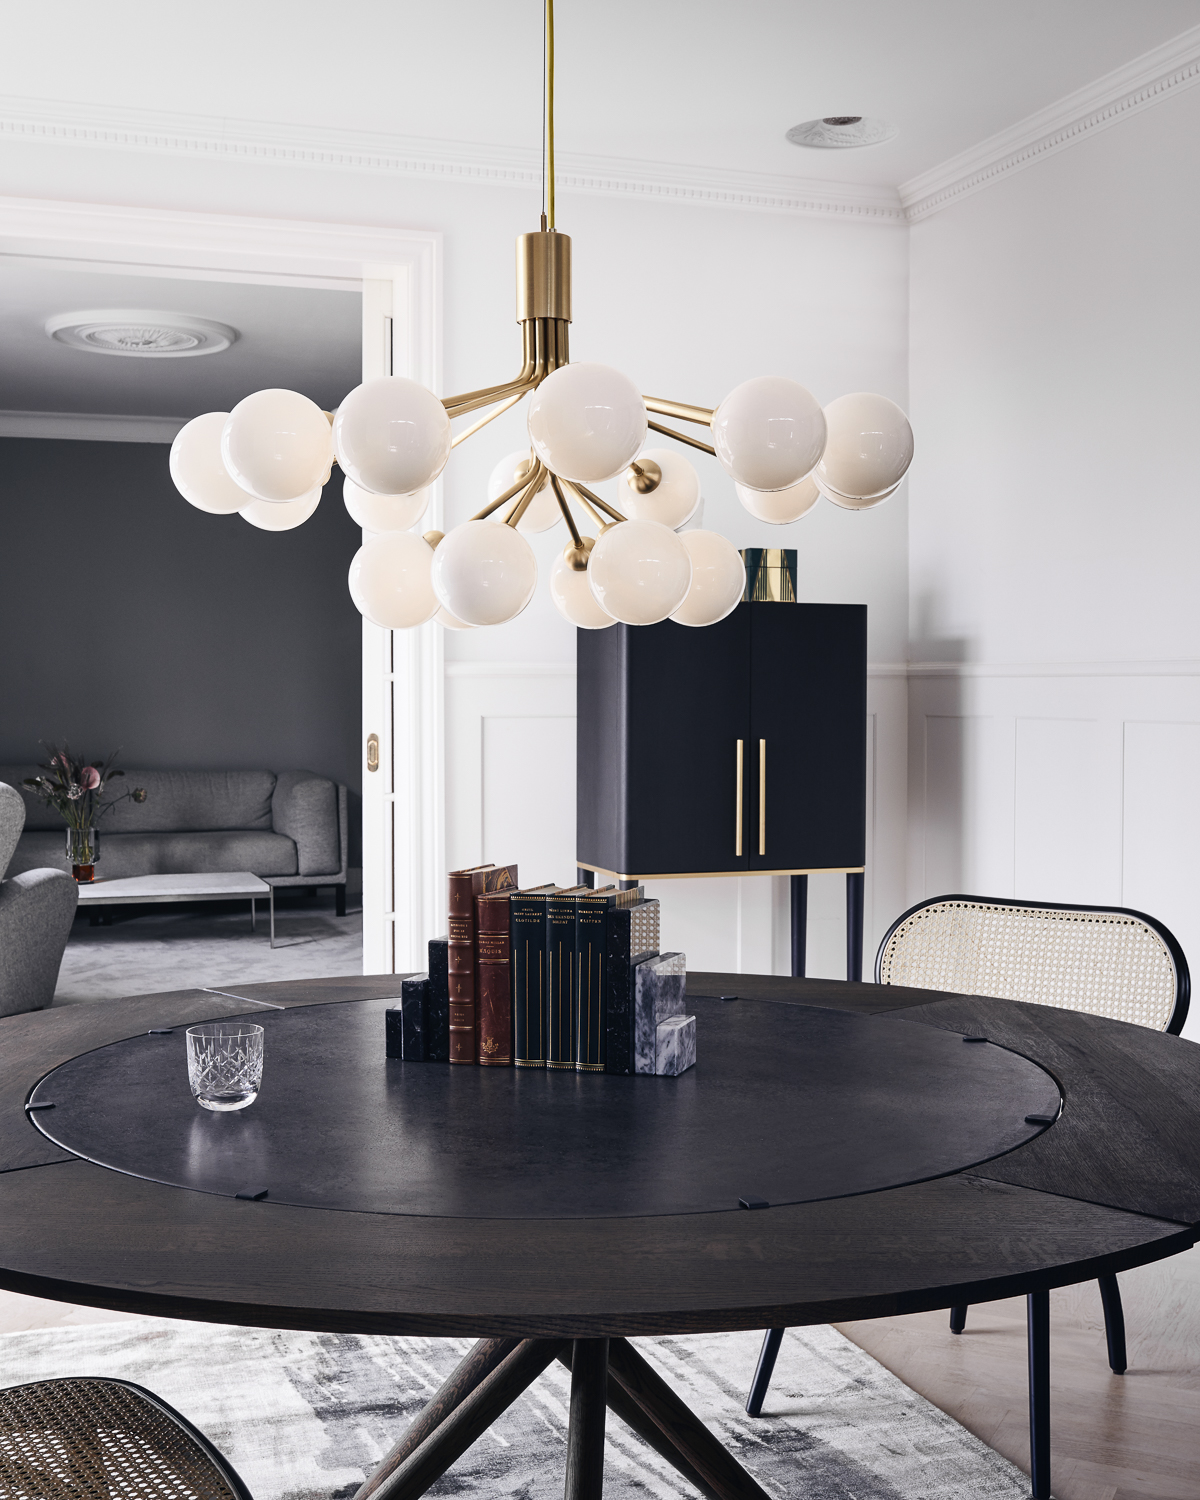 Apiales – new chandelier collection from Nuura